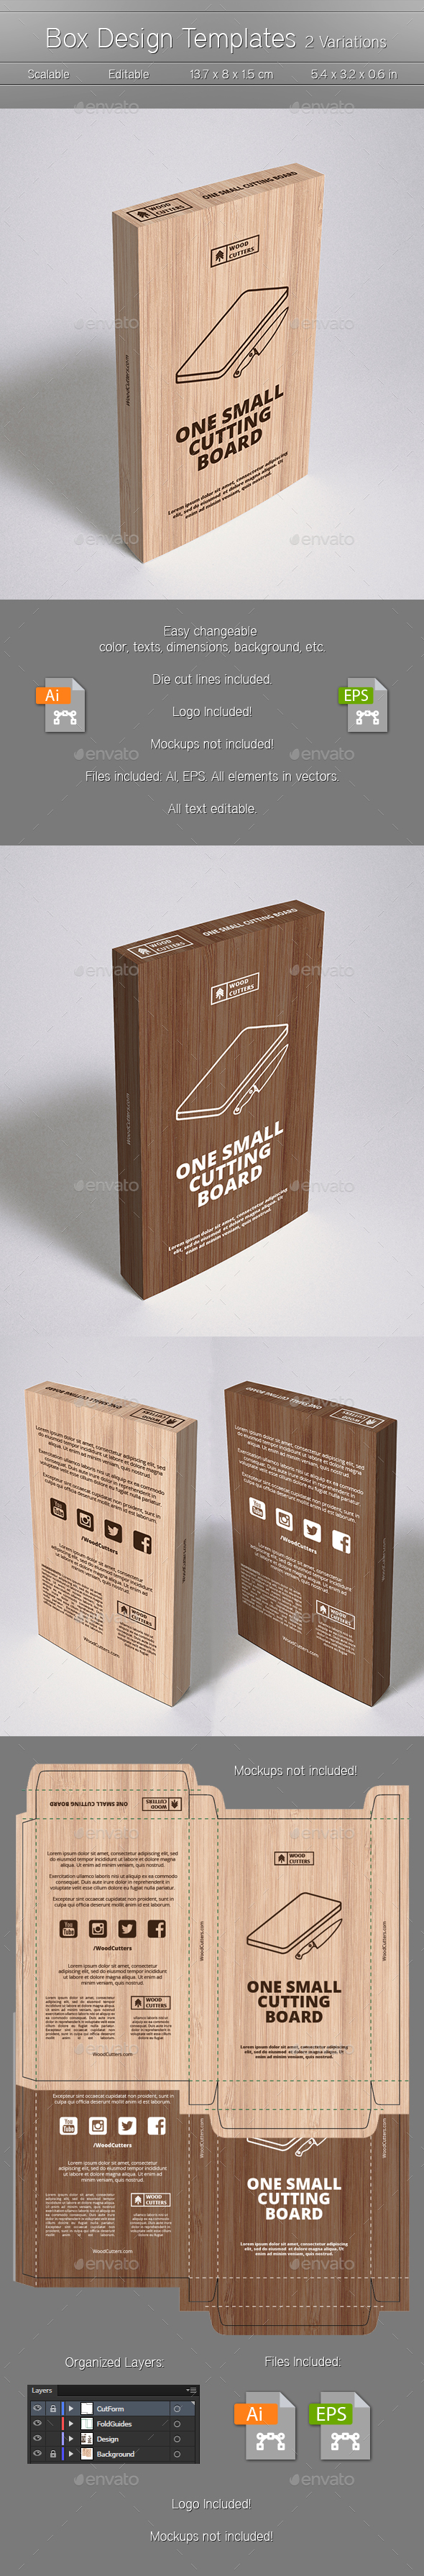 Wood Box Design Template - Packaging Print Templates